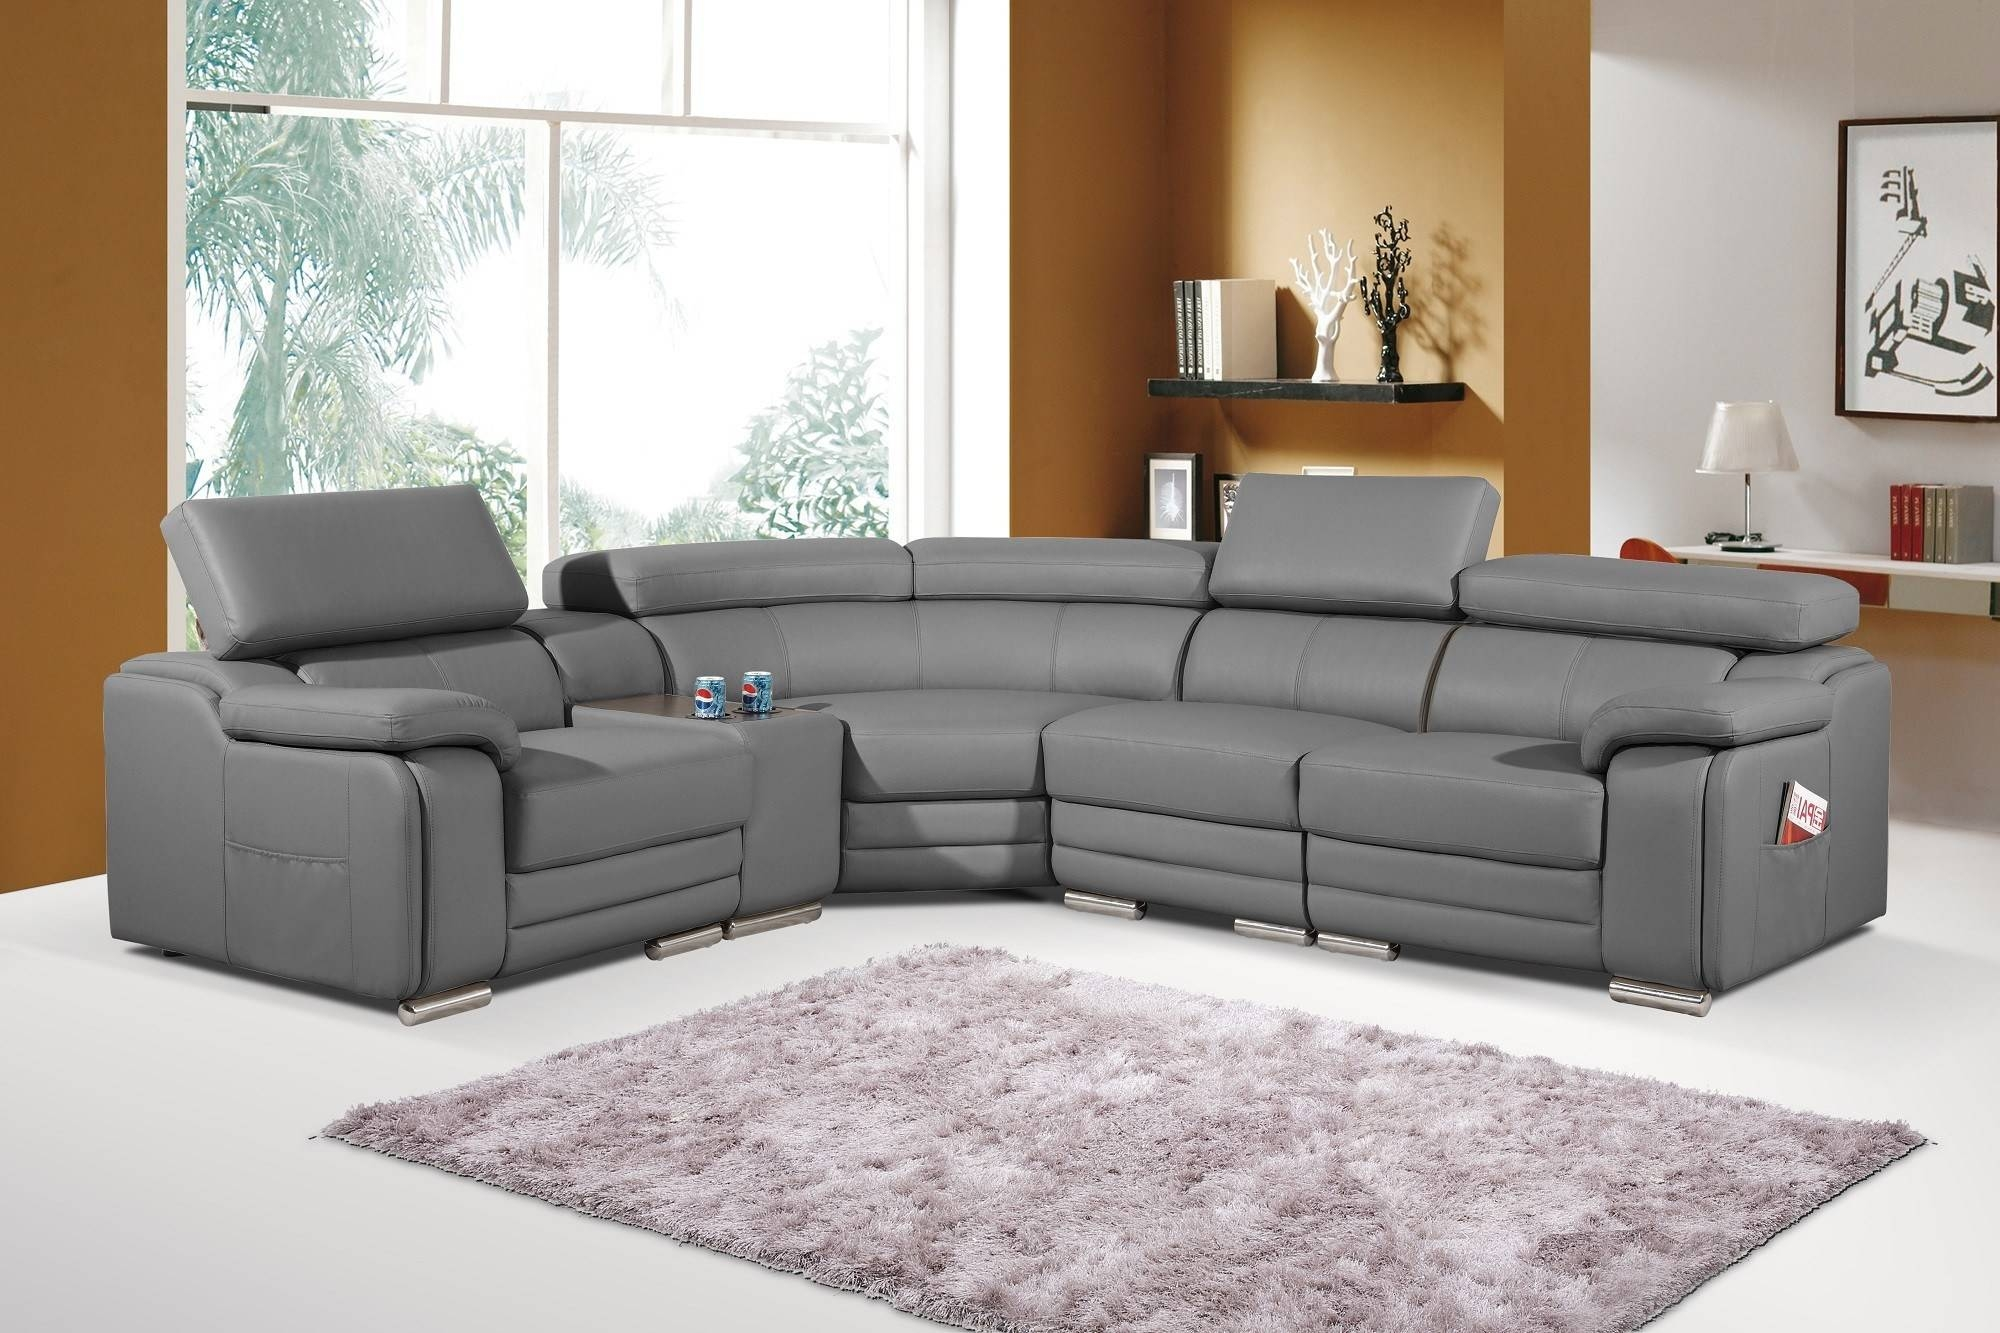 Target Sectional Sofa - Cleanupflorida inside 45 Degree Sectional Sofa (Image 29 of 30)